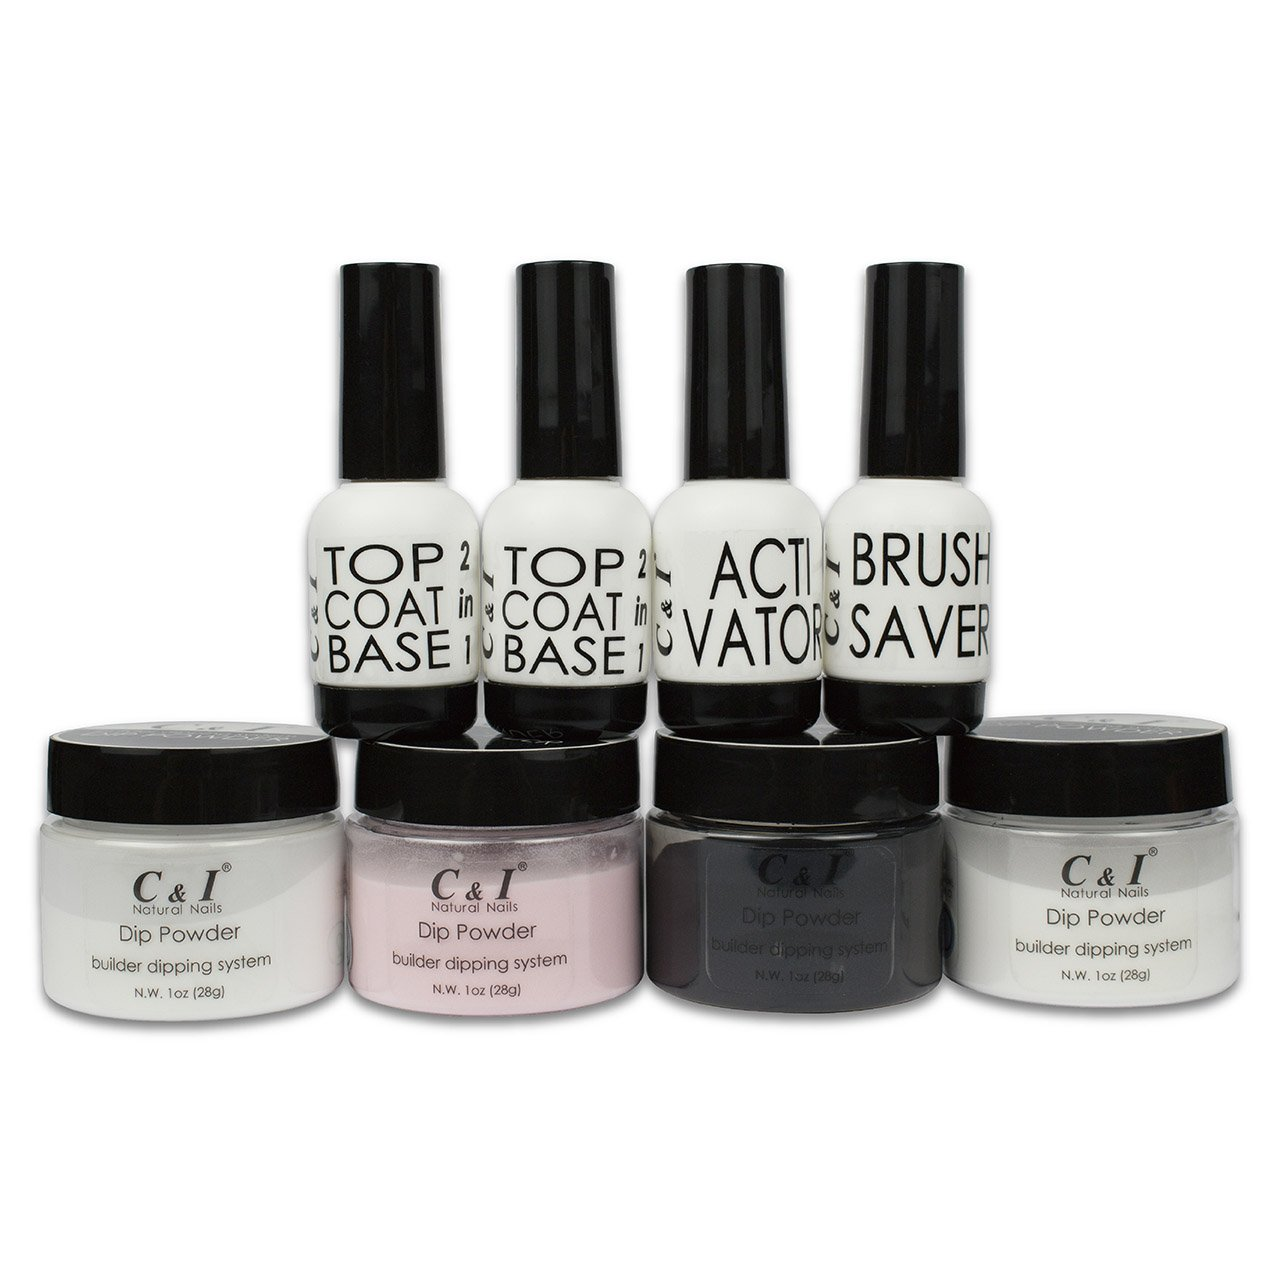 C & I Dipping Powder Builder Color System Set Fulei Trading